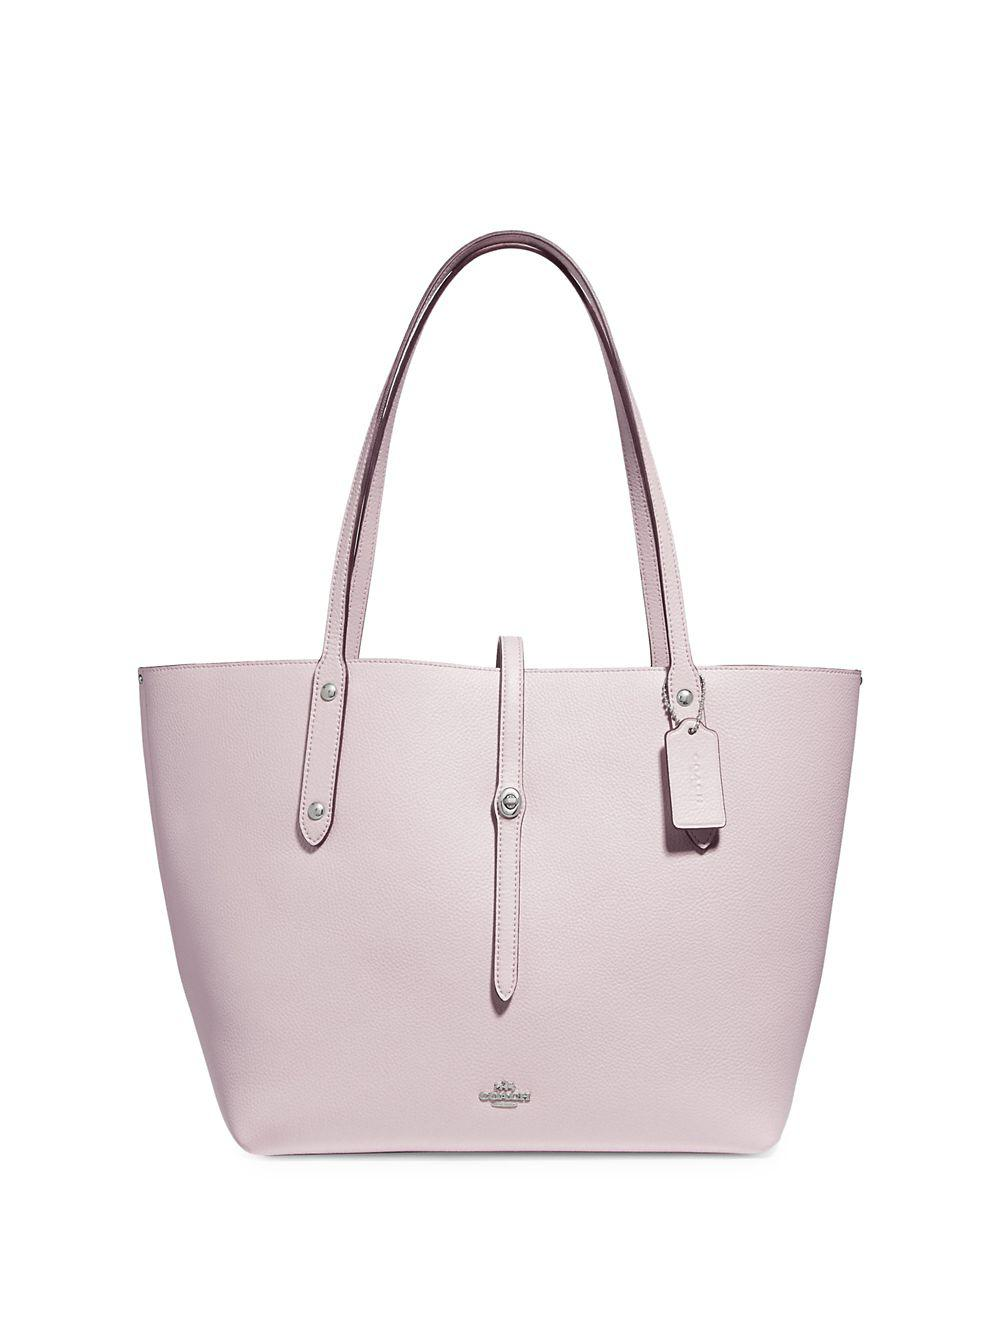 c39a166e81 Coach Polished Pebbled Leather Market Tote in Pink - Lyst